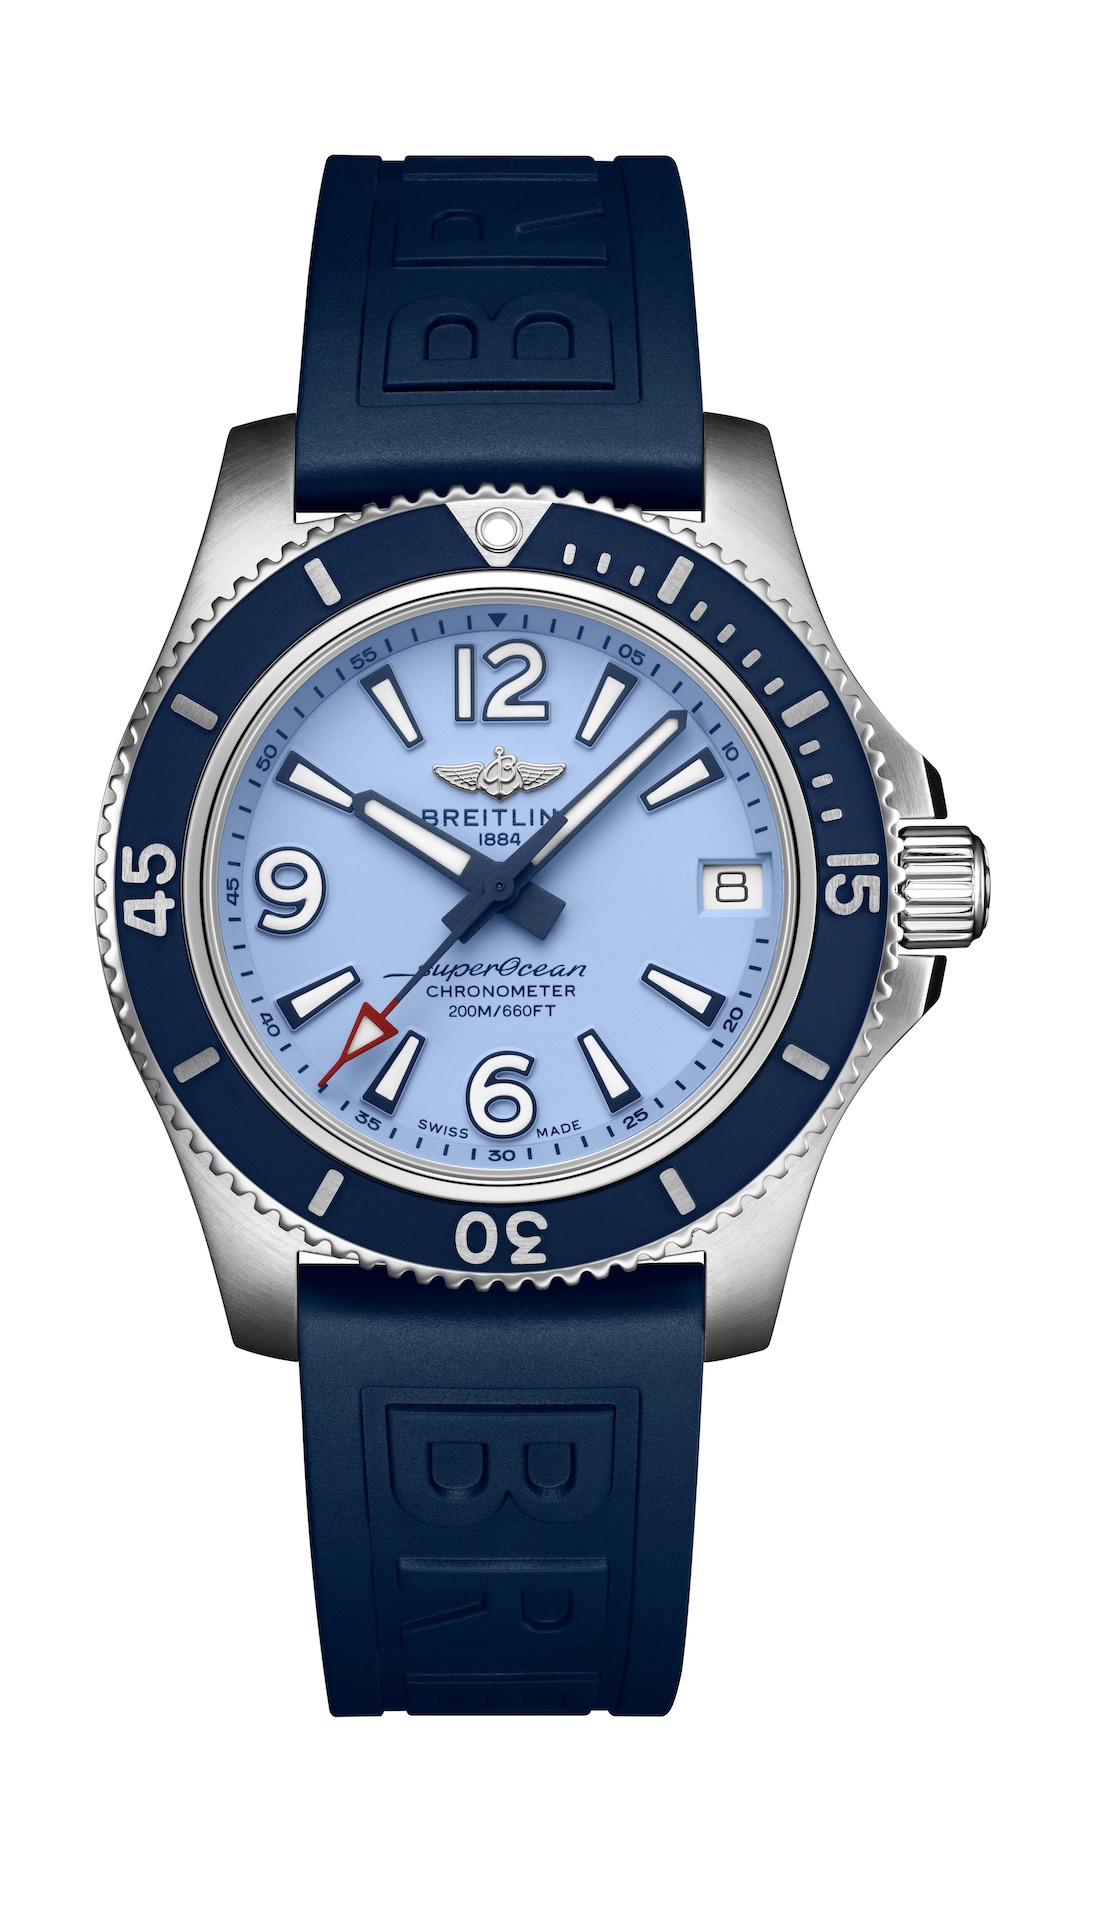 21_Superocean 36 with light blue dial and blue Diver Pro III rubber strap_22854_19-03-19.jpeg